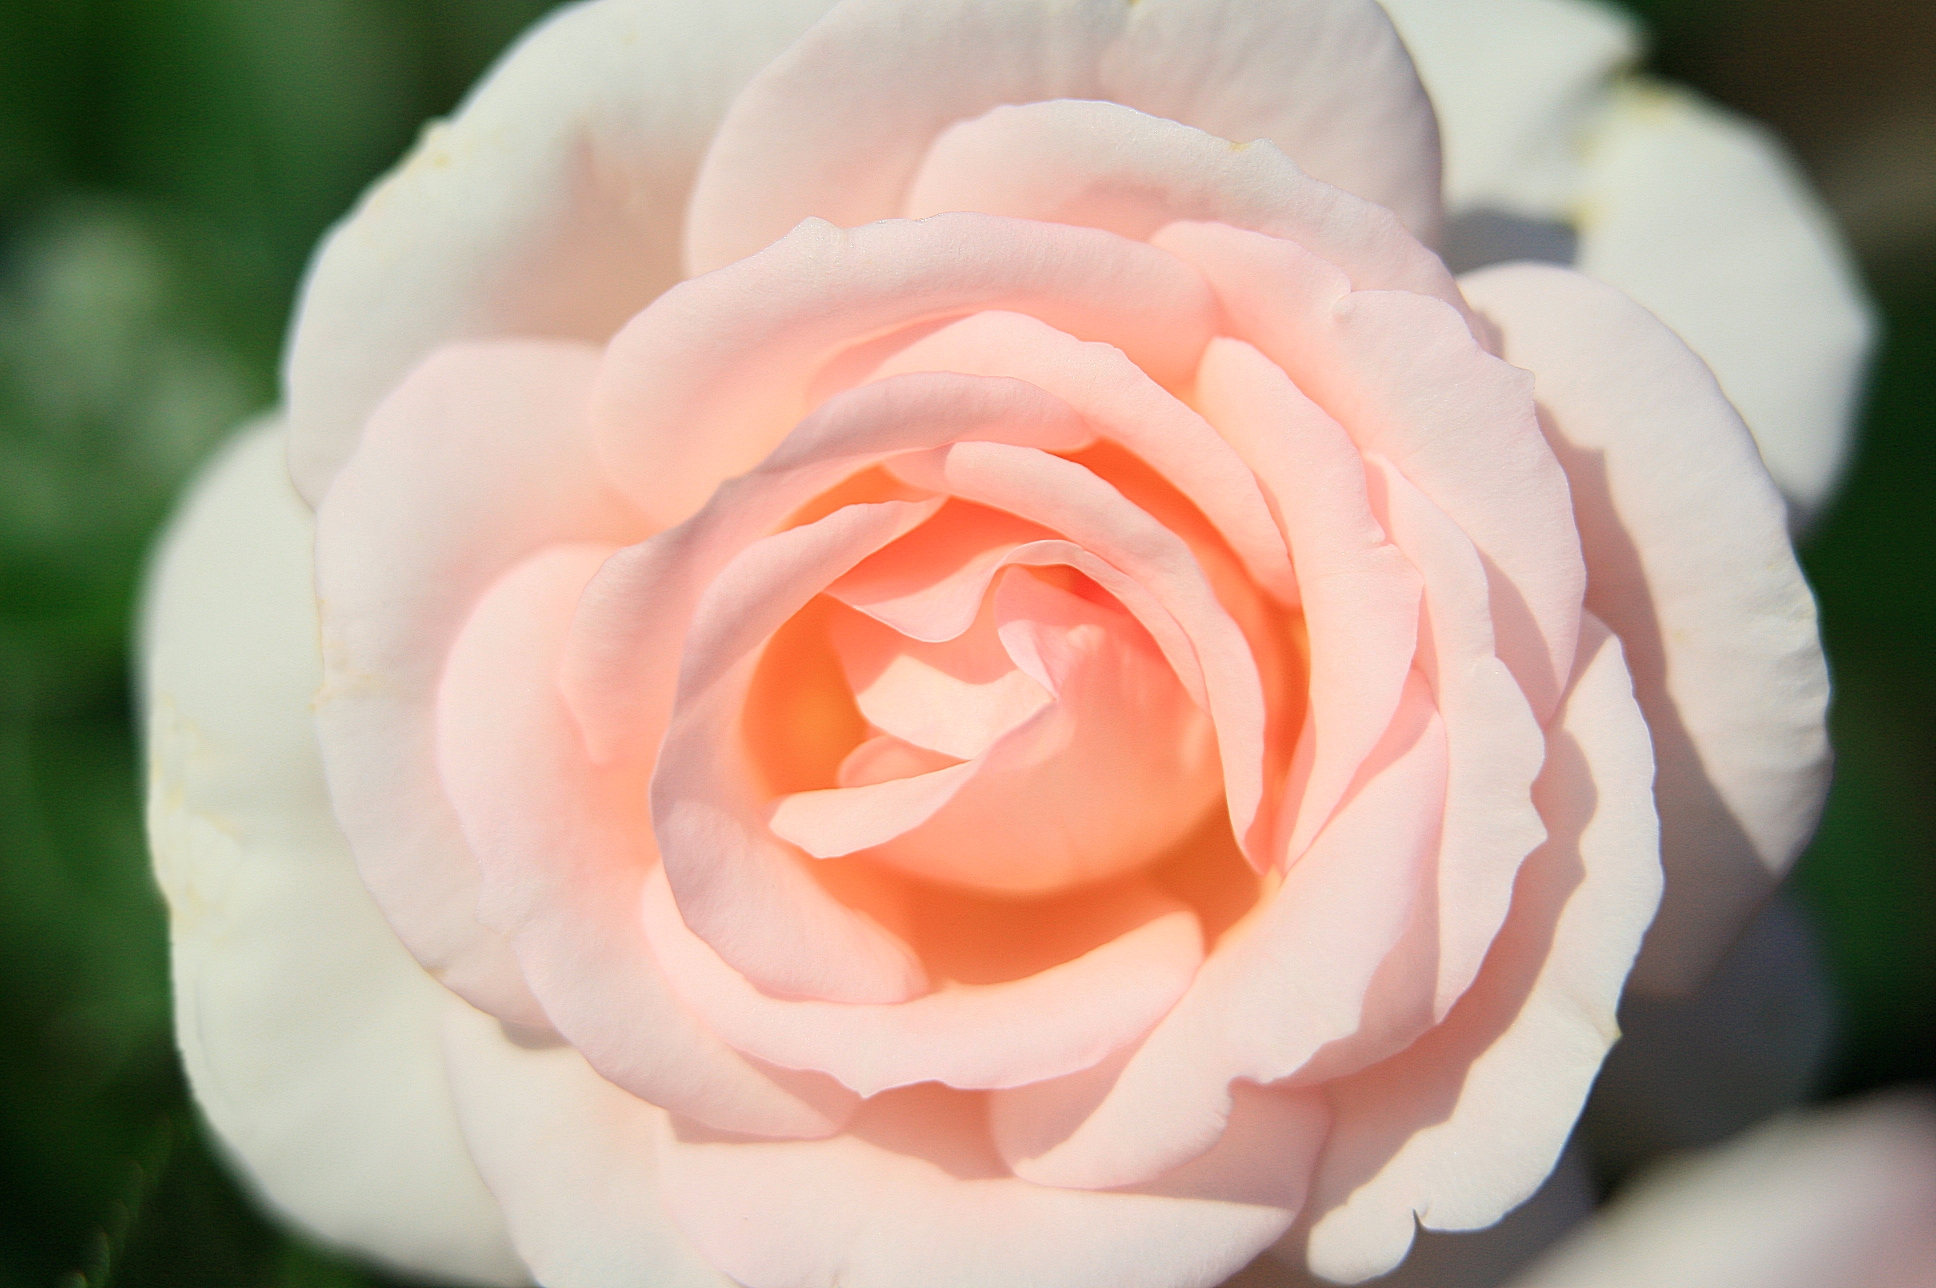 Rosa - A Whiter Shade Of Pale 2017 -005.jpg